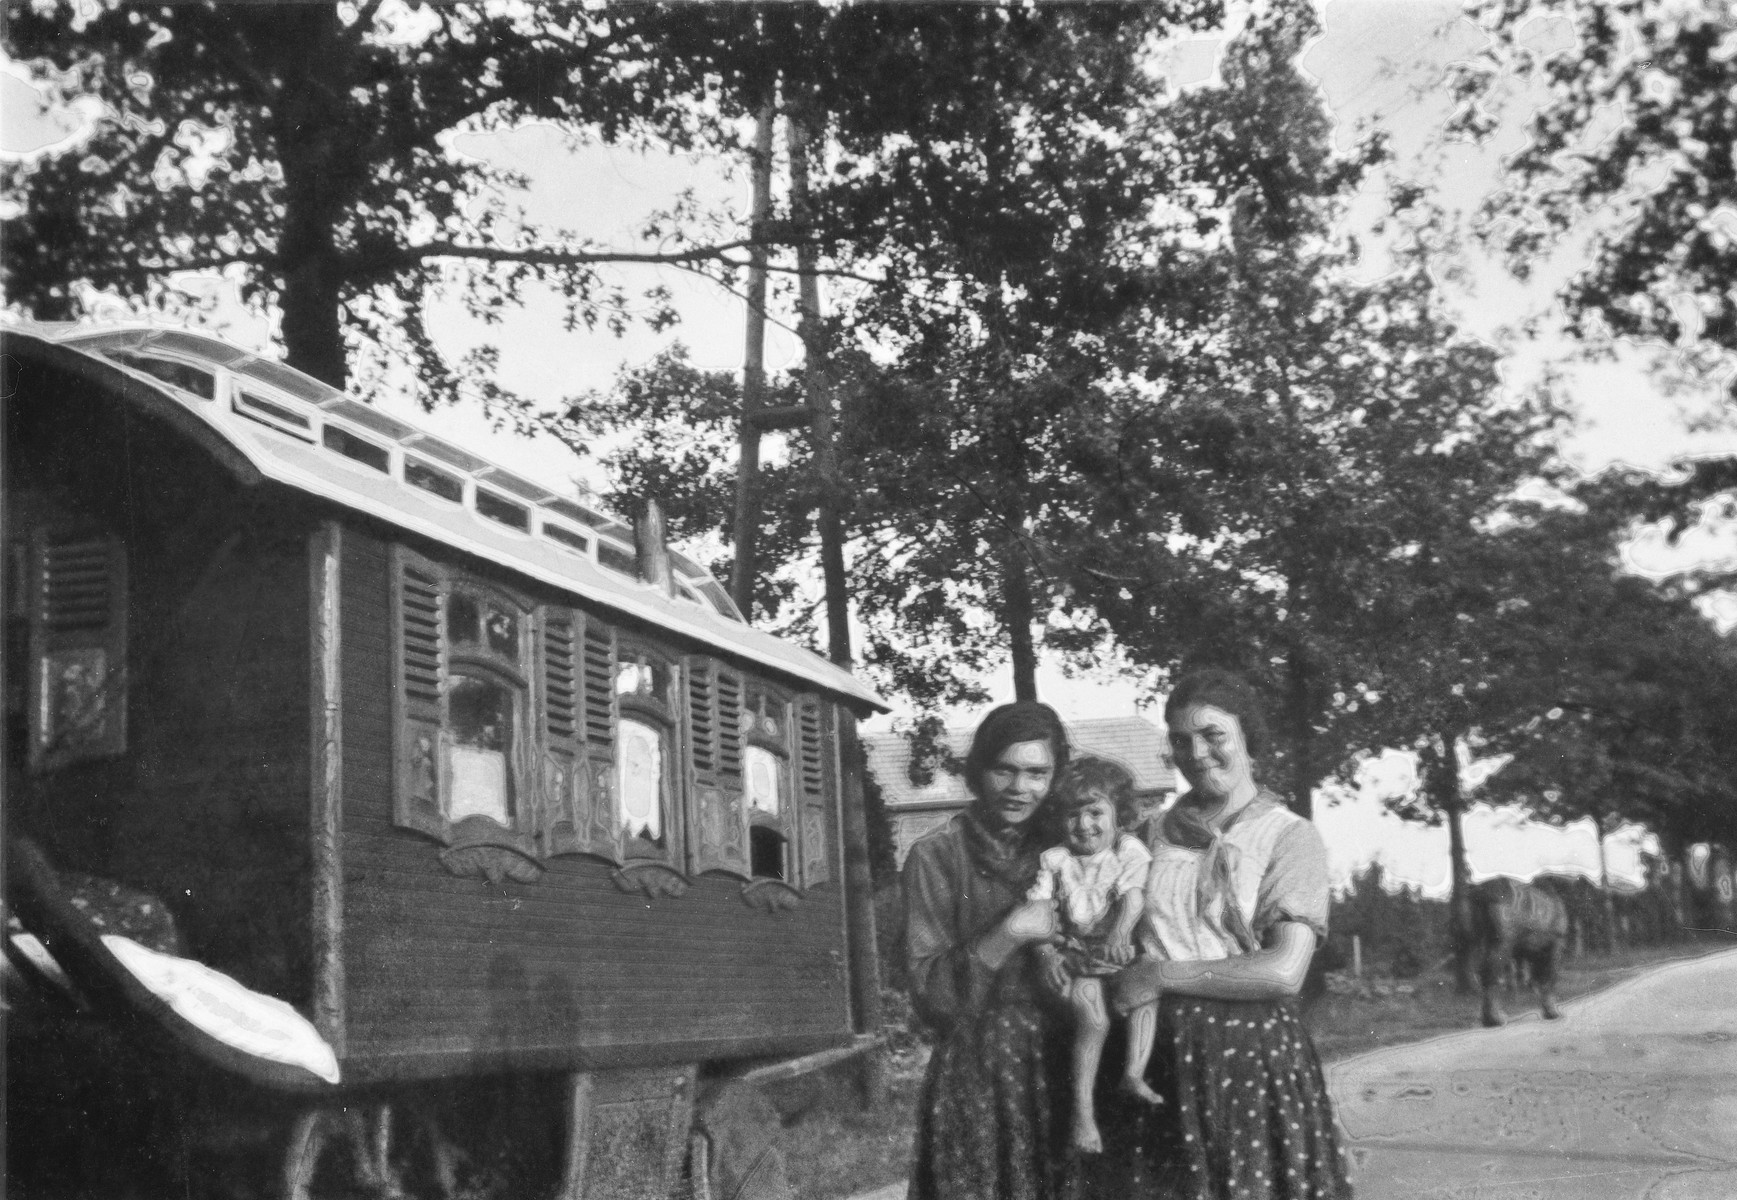 Two smiling Romani (Gypsy) women stand on a road next to a caravan, holding a baby.